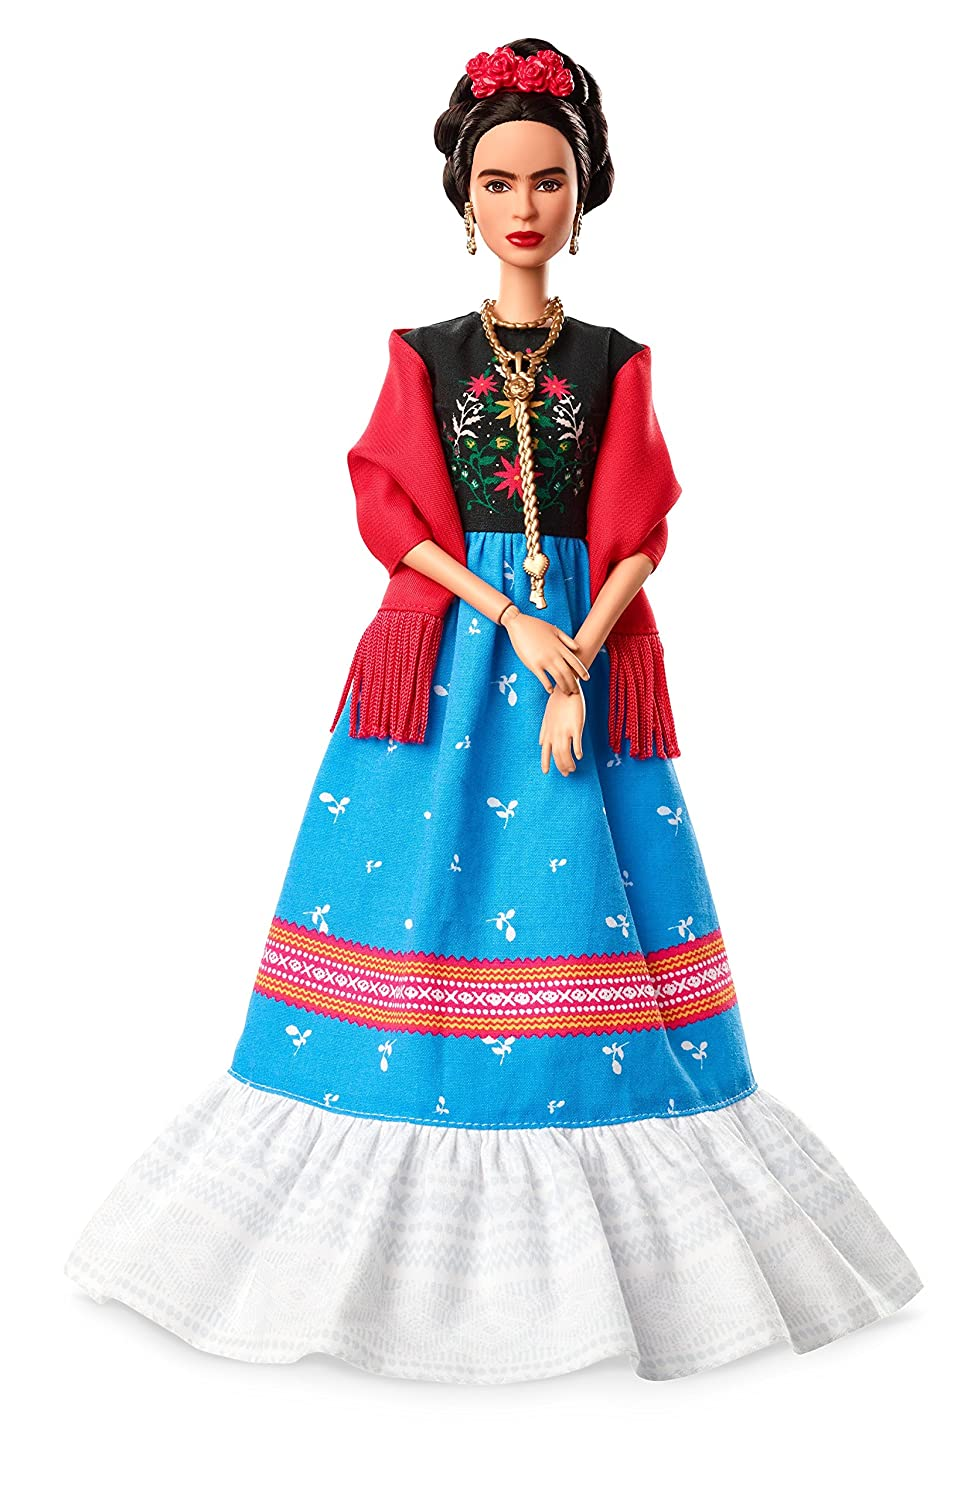 Barbie Inspiring Women Frida Kahlo Doll Mattel FJH65